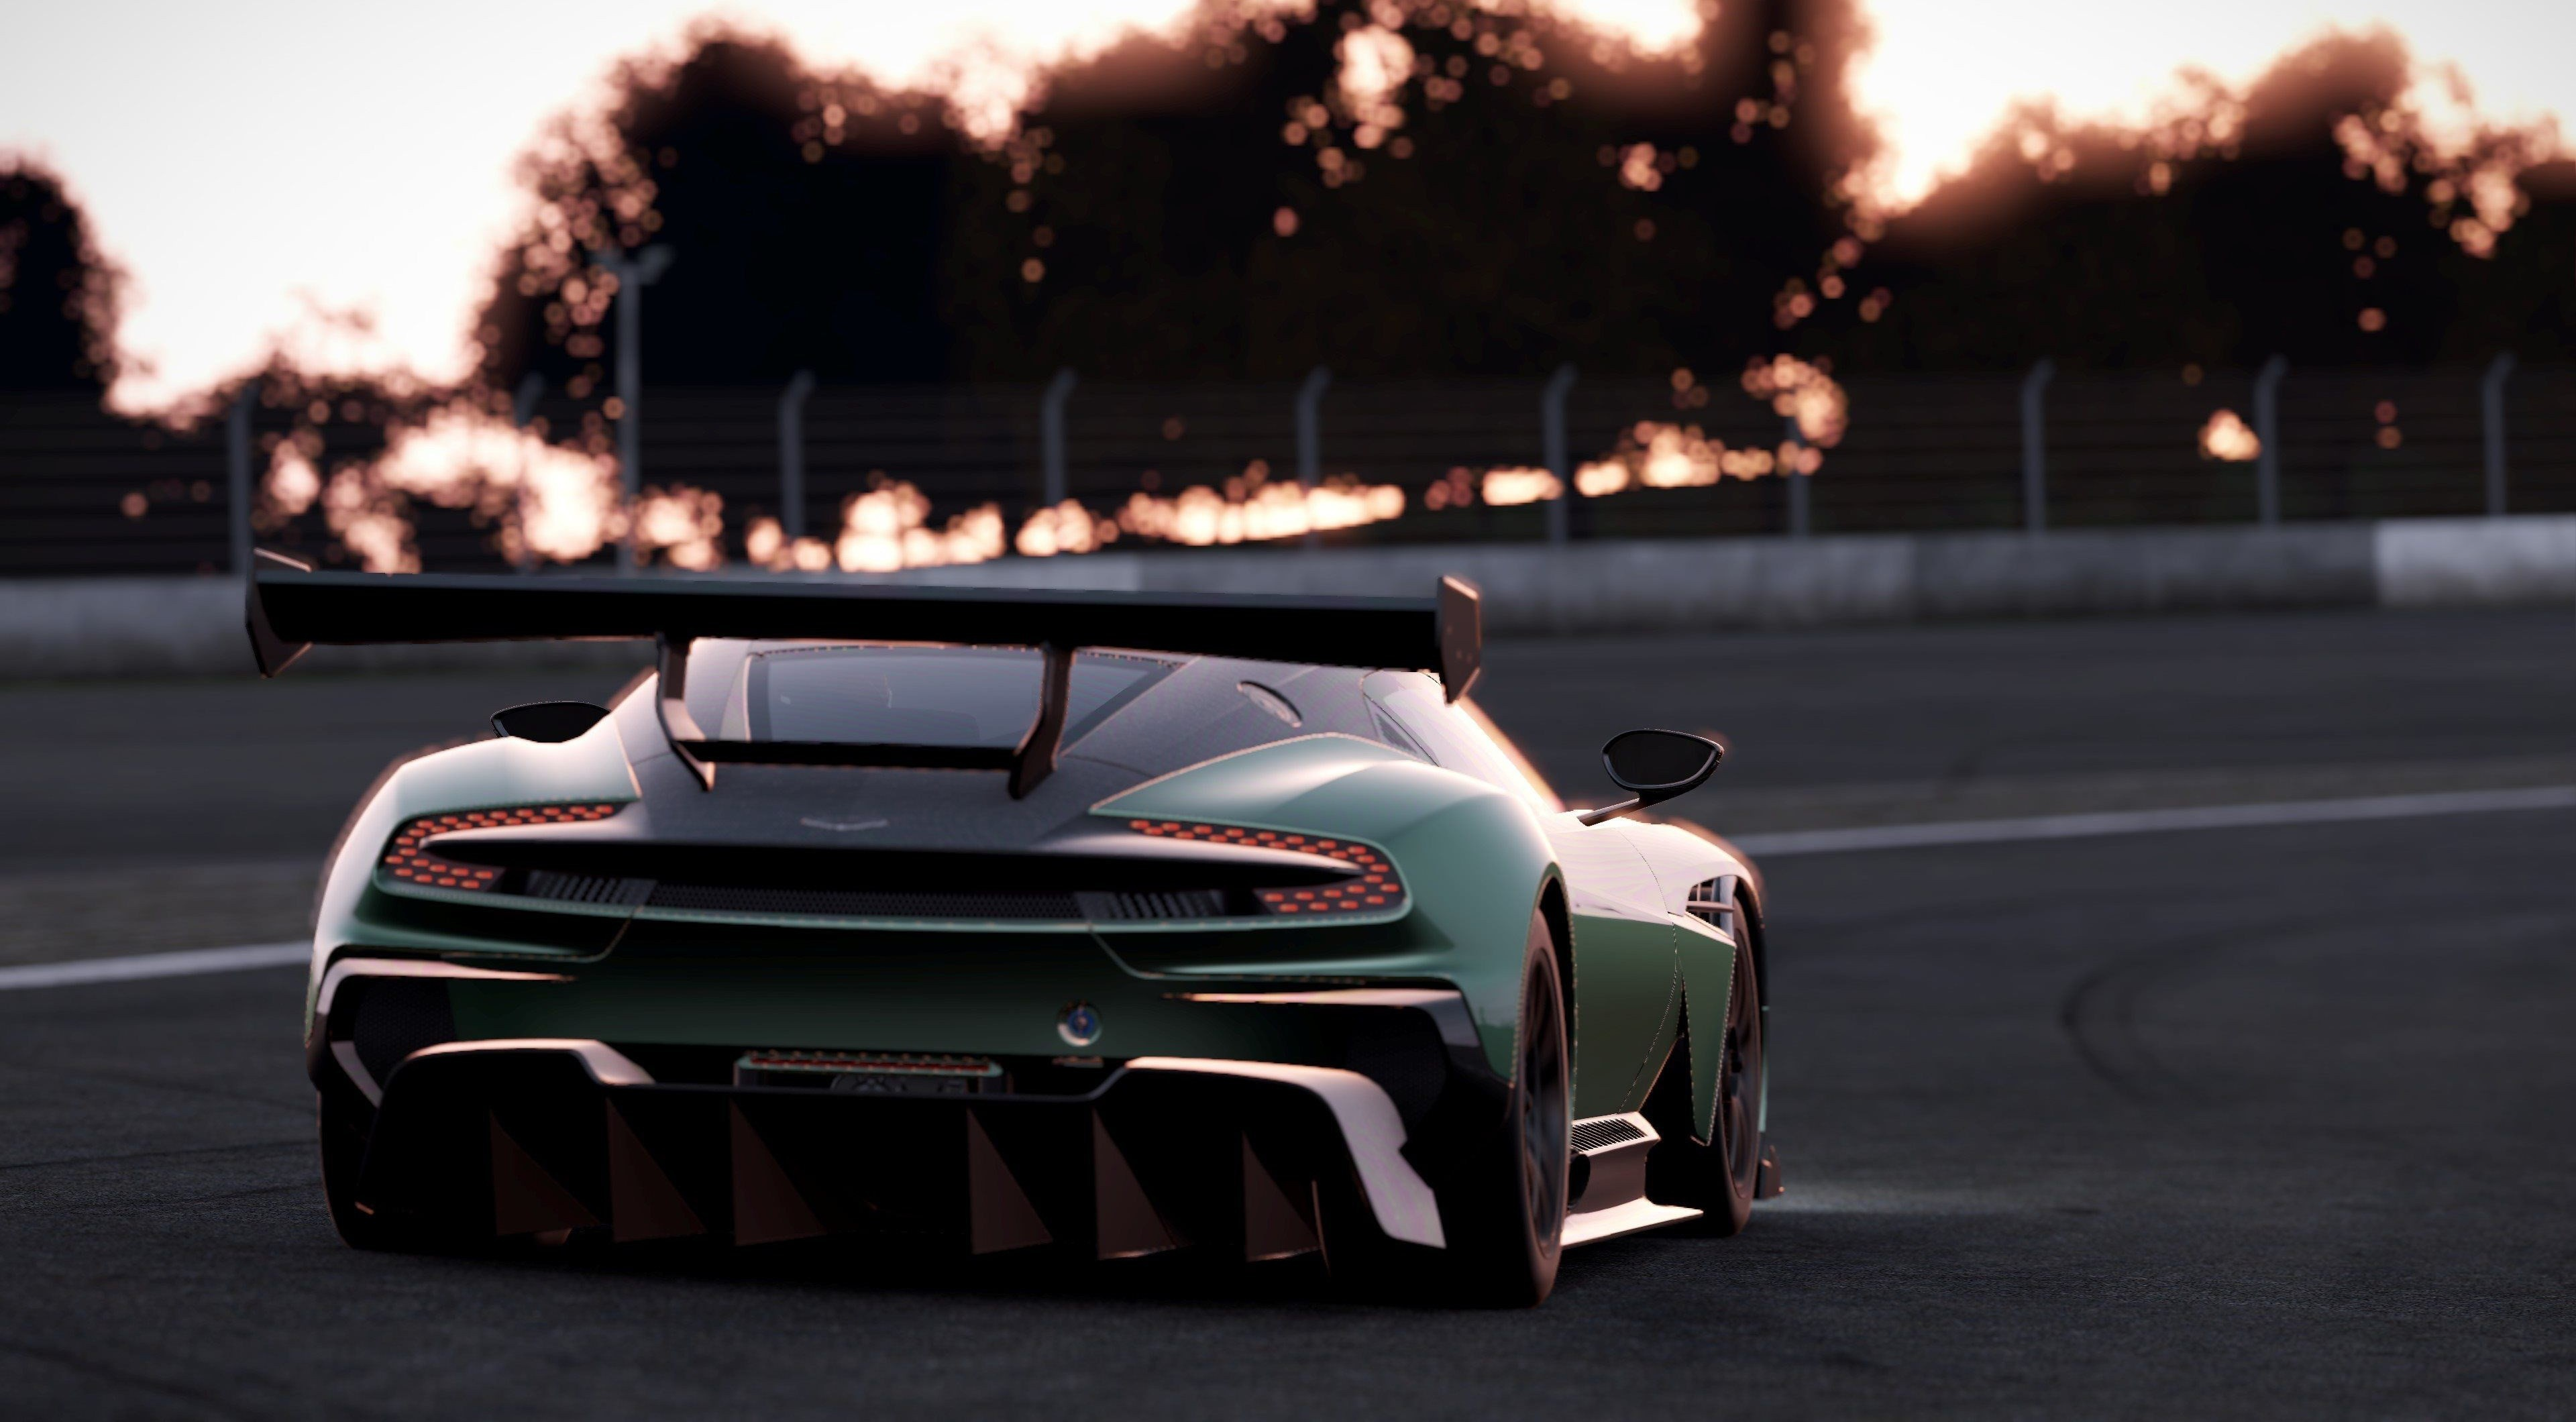 34 Forza Motorsport HD Wallpapers Background Images   Wallpaper 3840x2120